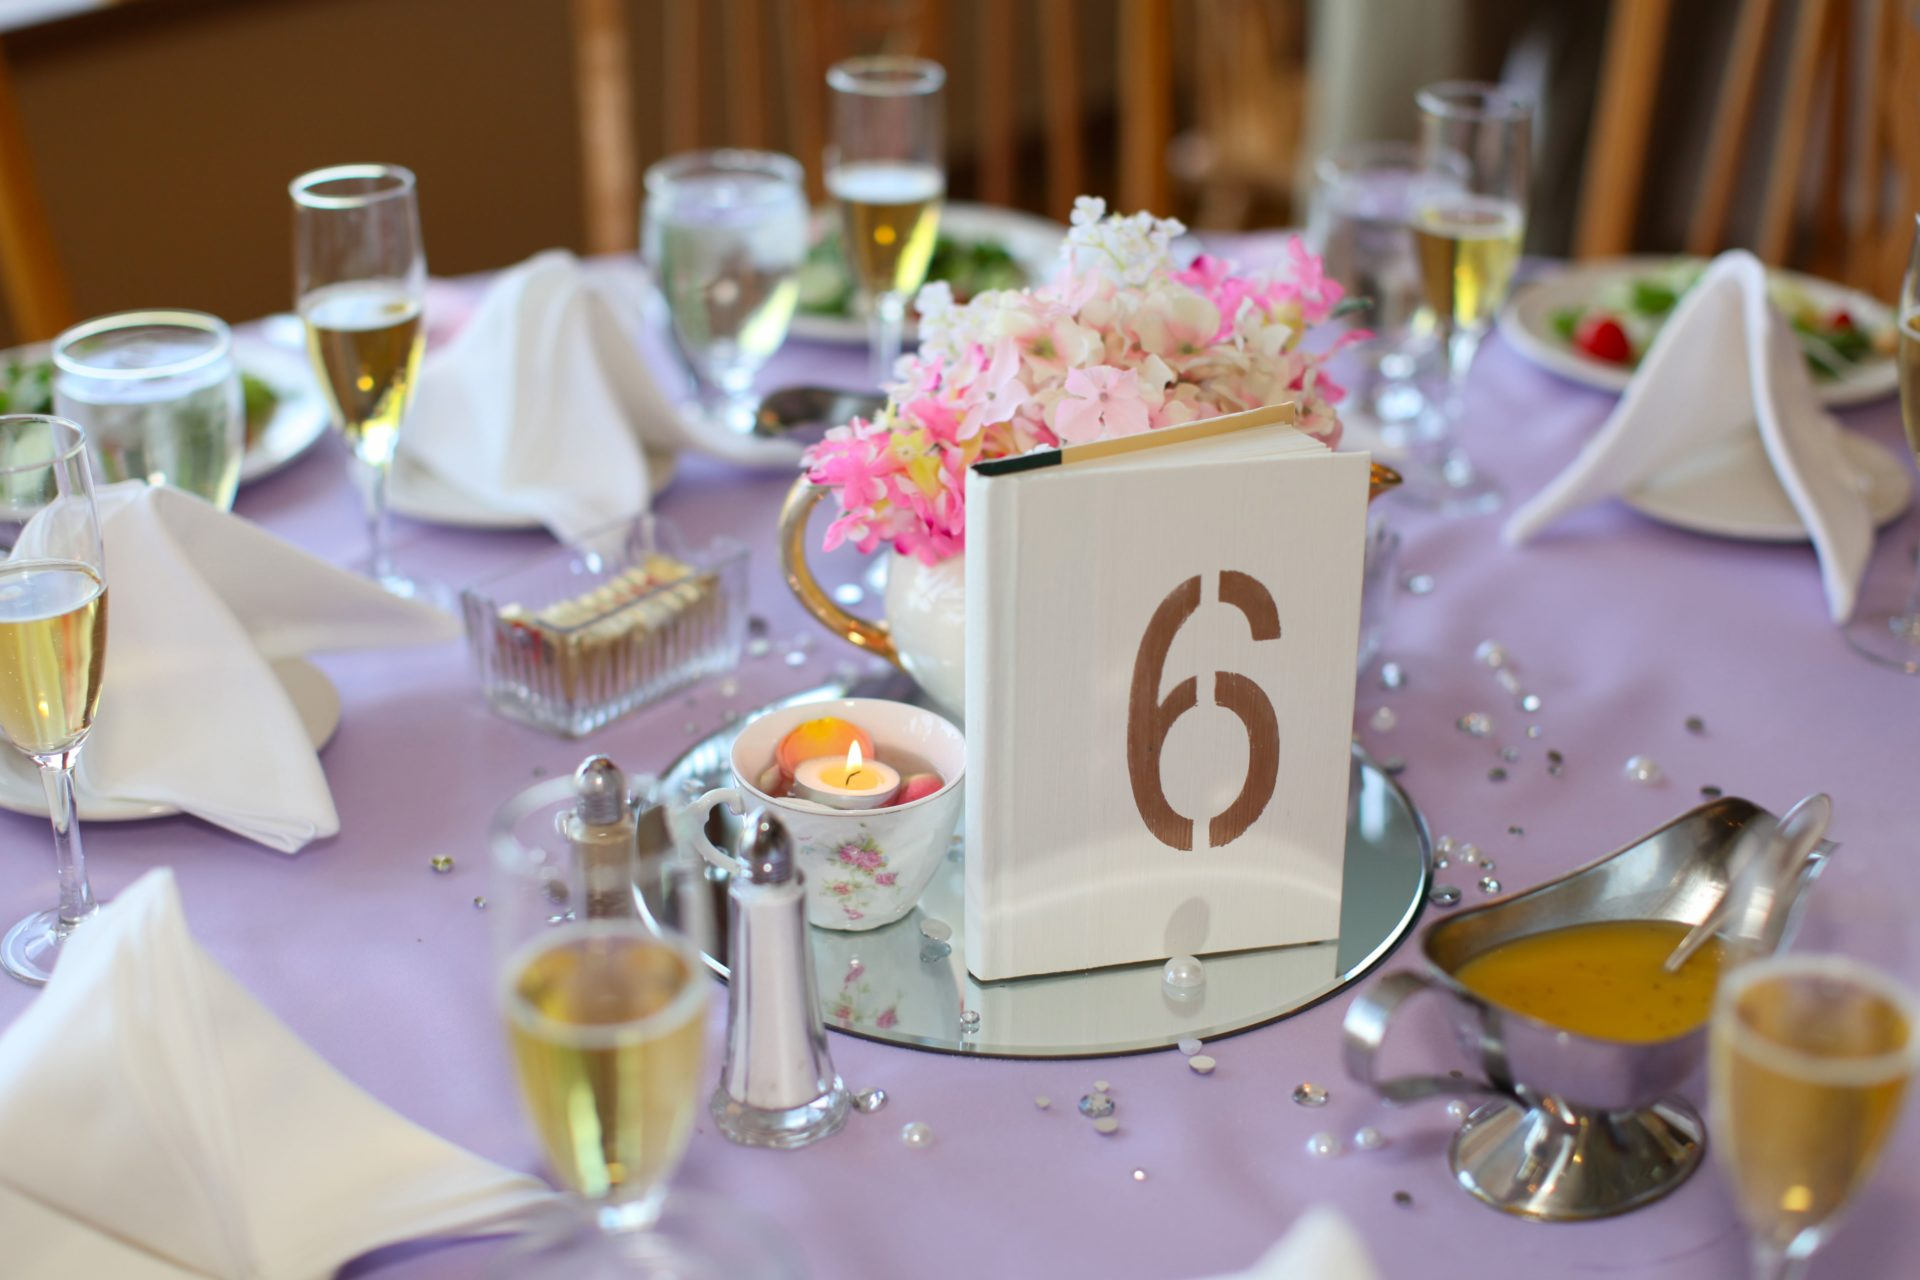 Tea party theme wedding table centerpiece idea